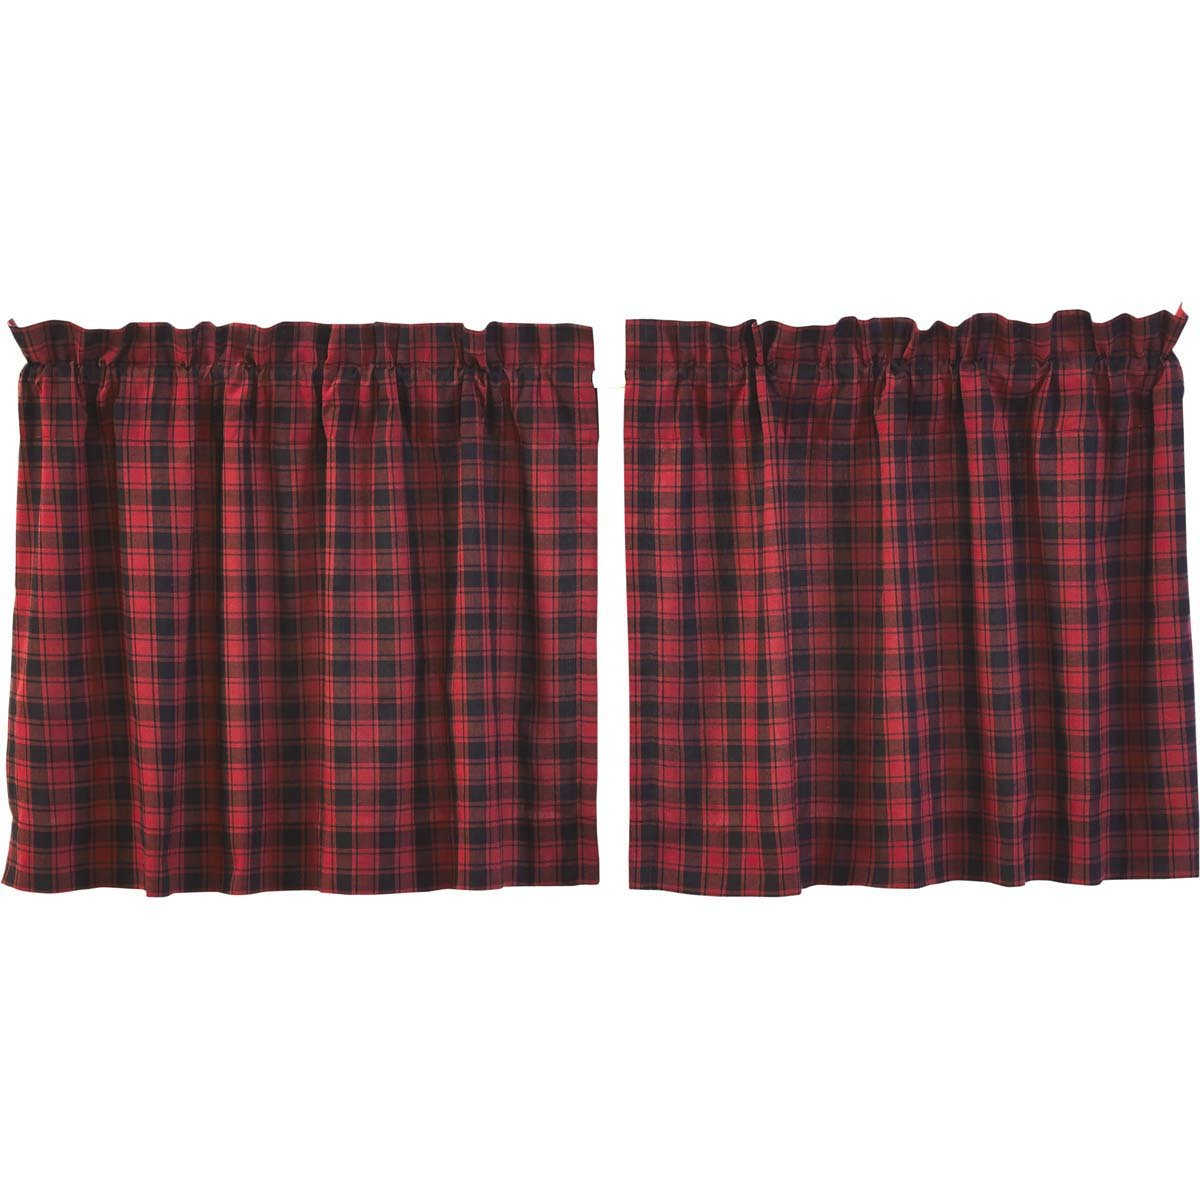 Most Recent Vhc Brands Rustic & Lodge Kitchen Window Curtains – Cumberland Red Tier Pair L36 X W36, Chili Pepper For Cumberland Tier Pair Rod Pocket Cotton Buffalo Check Kitchen Curtains (View 14 of 20)